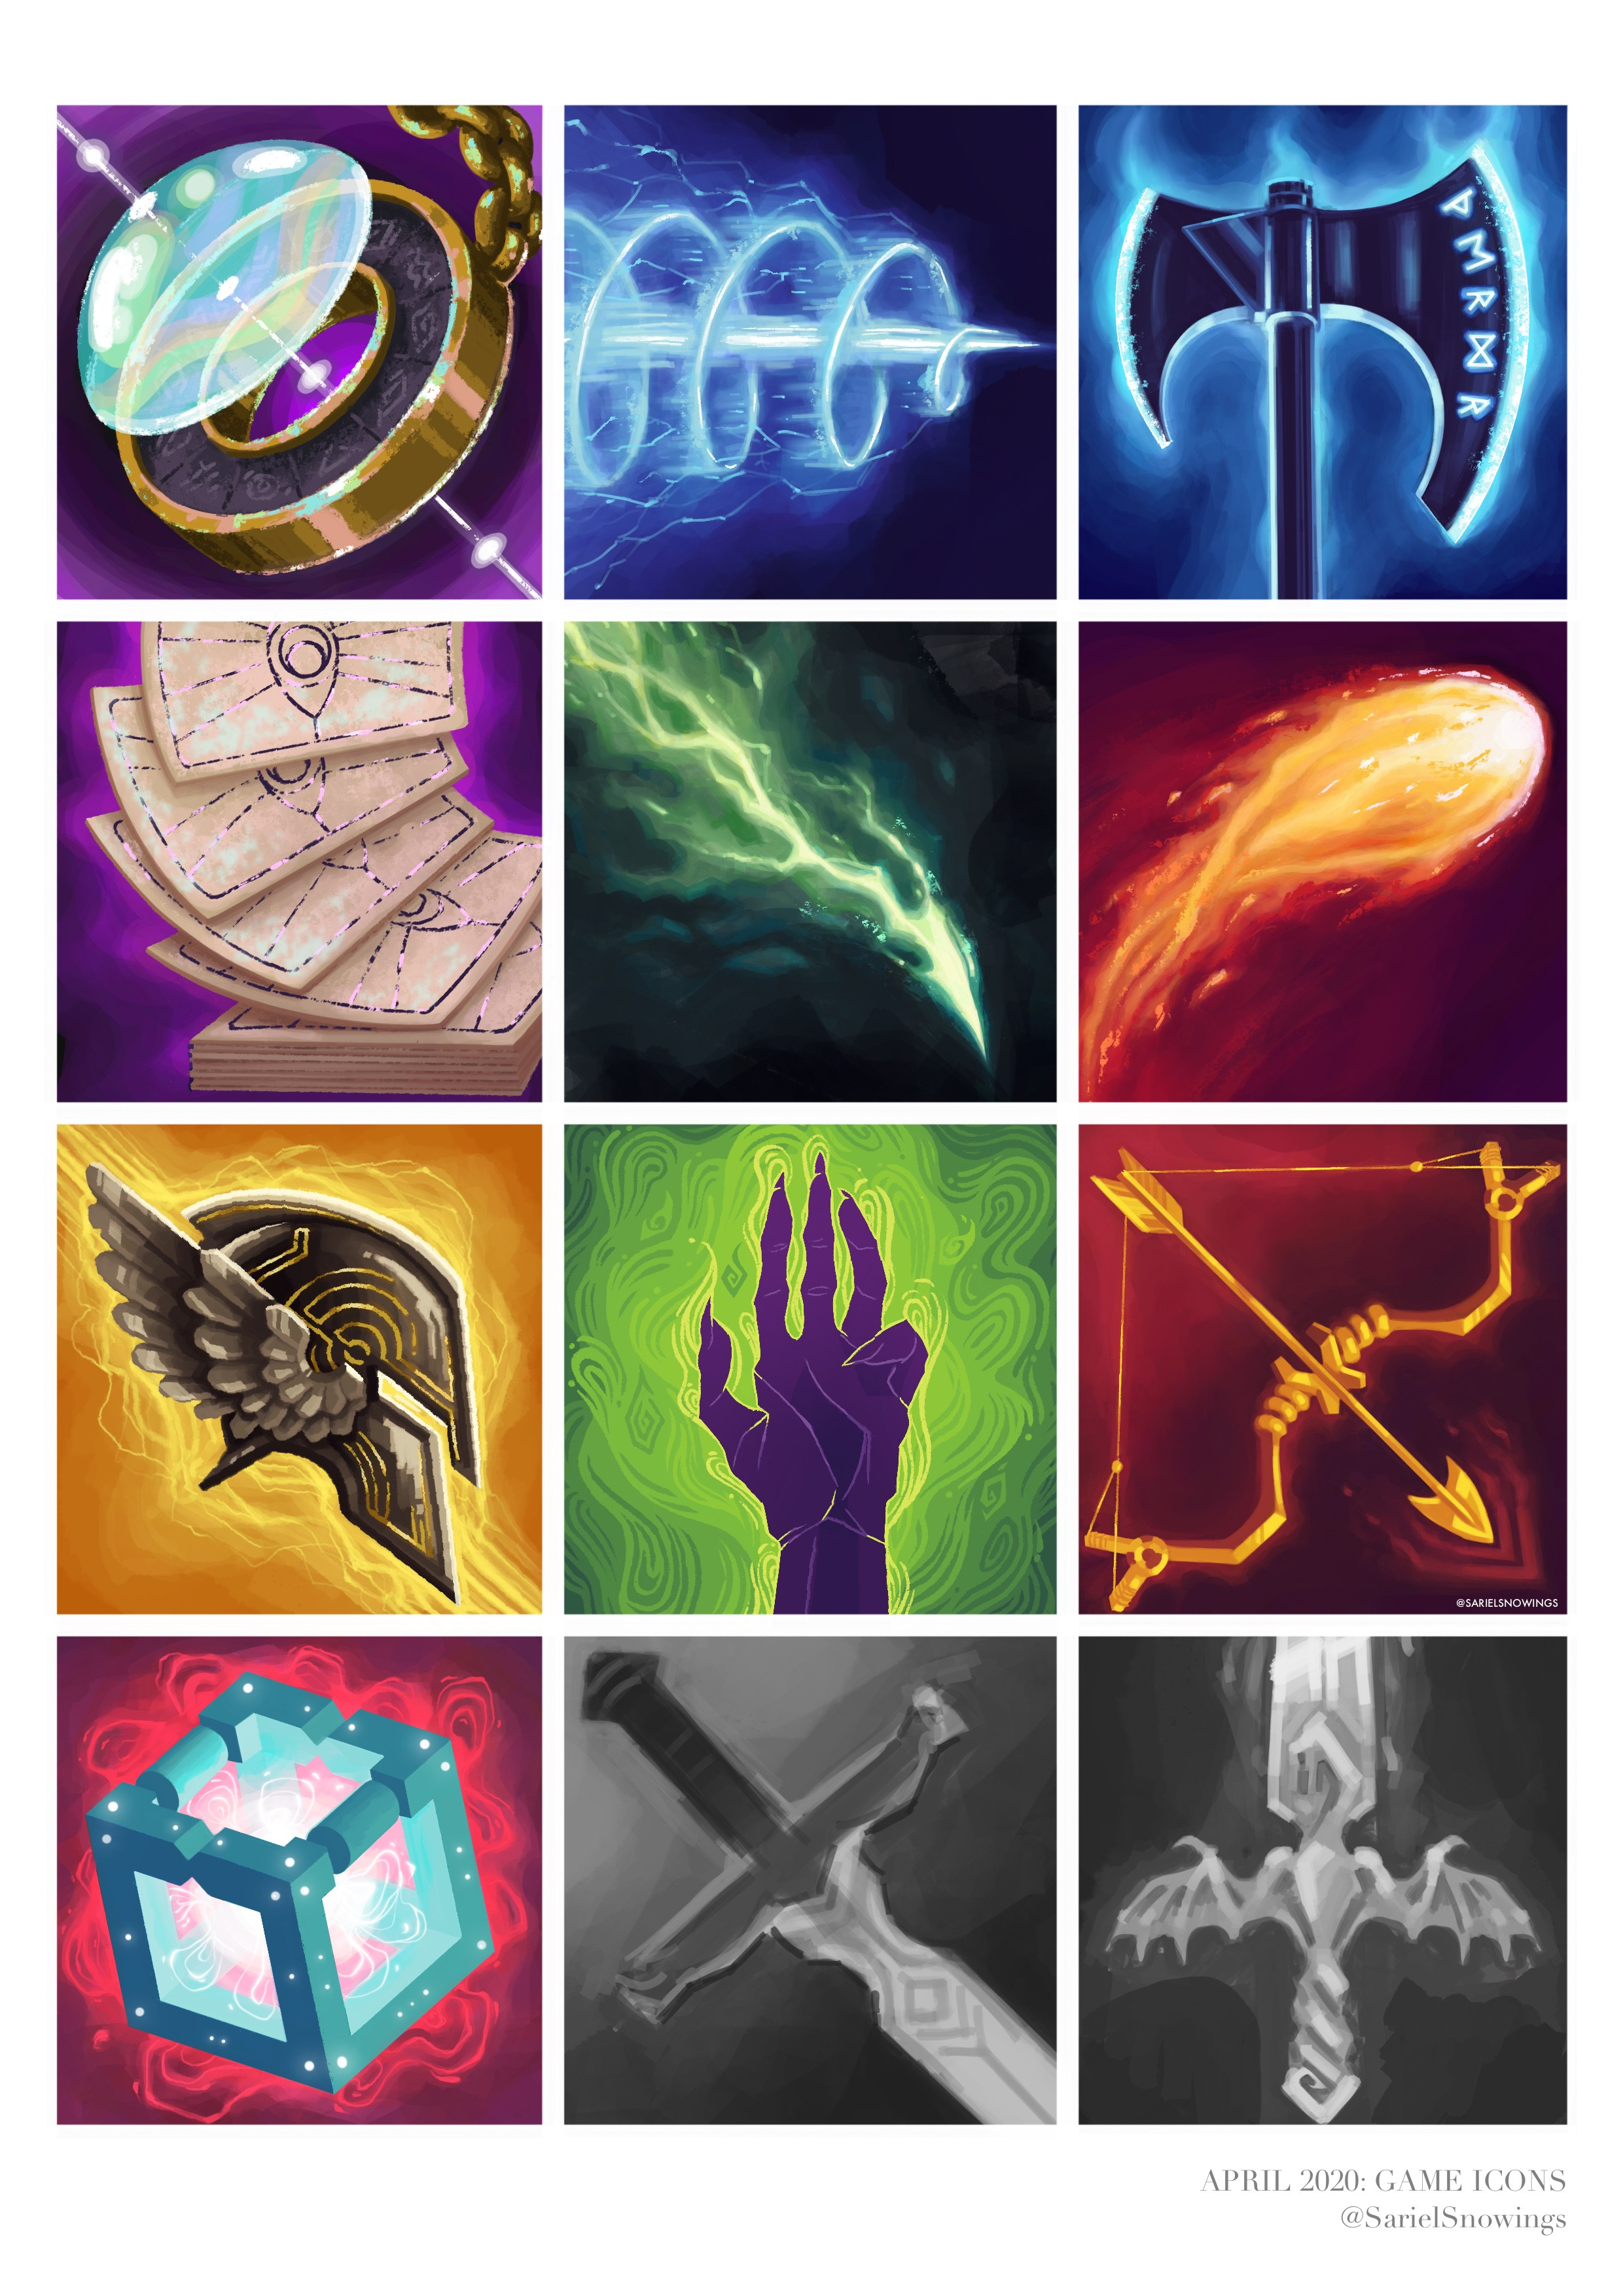 Here's a compilation of ALL the icons I made in April, both finished and unfinished. Posted above it HQ are my 6 favourites.